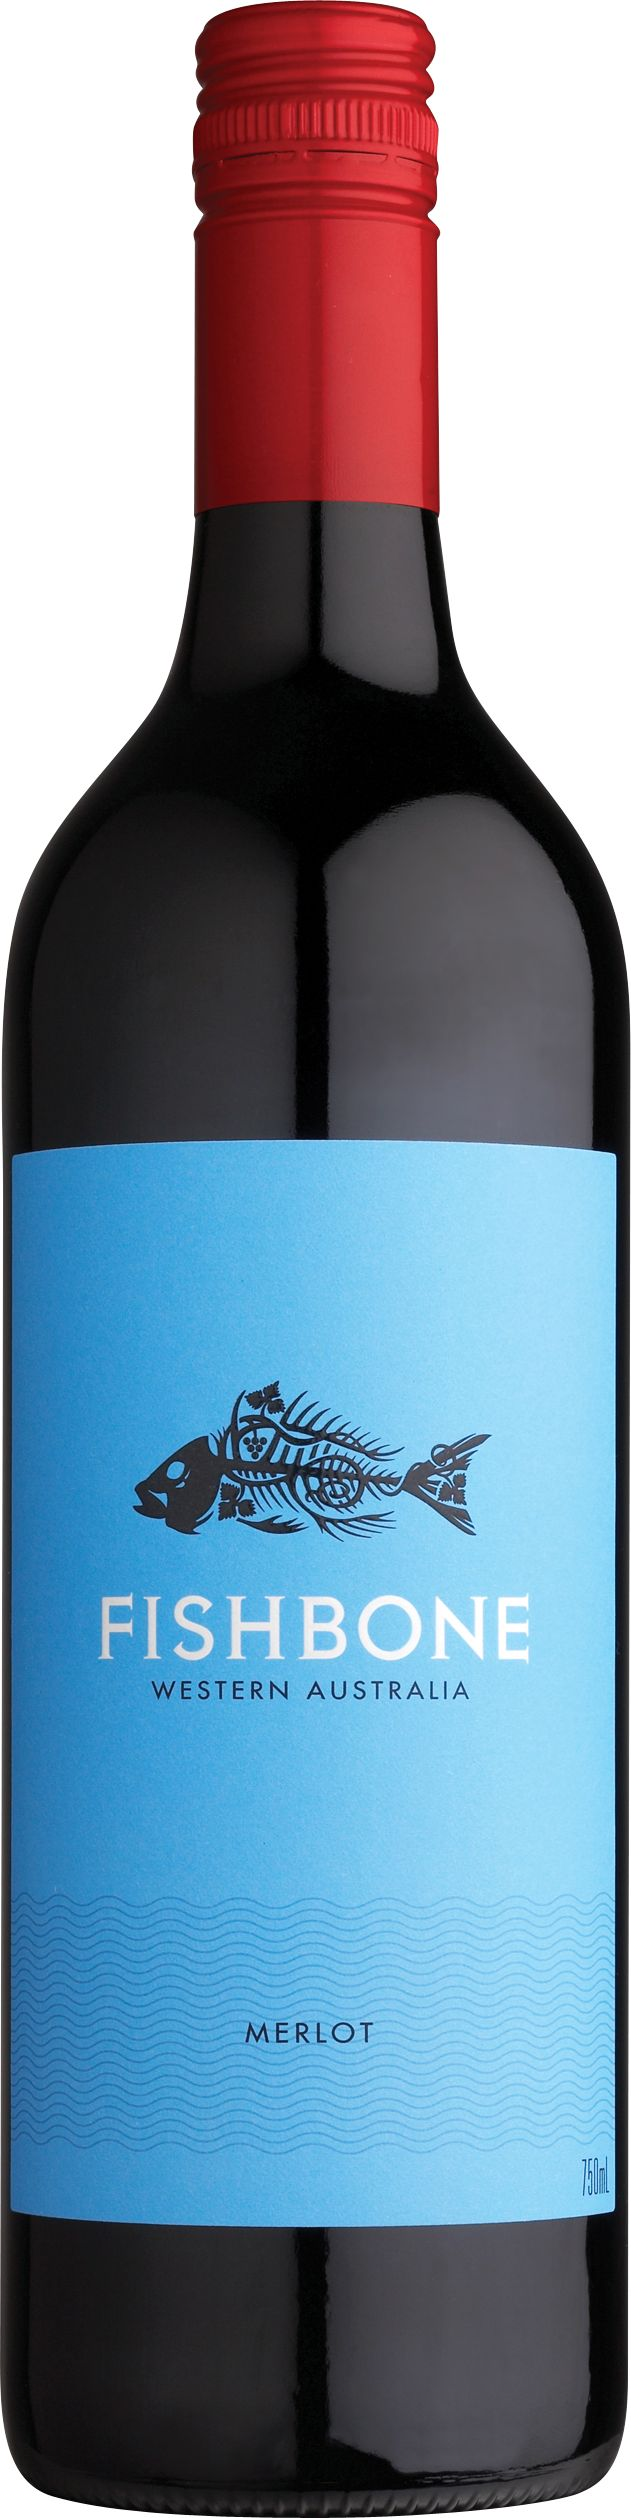 http://www.harveyriverbridgeestate.com.au/categories/Our-Brands/Fishbone/